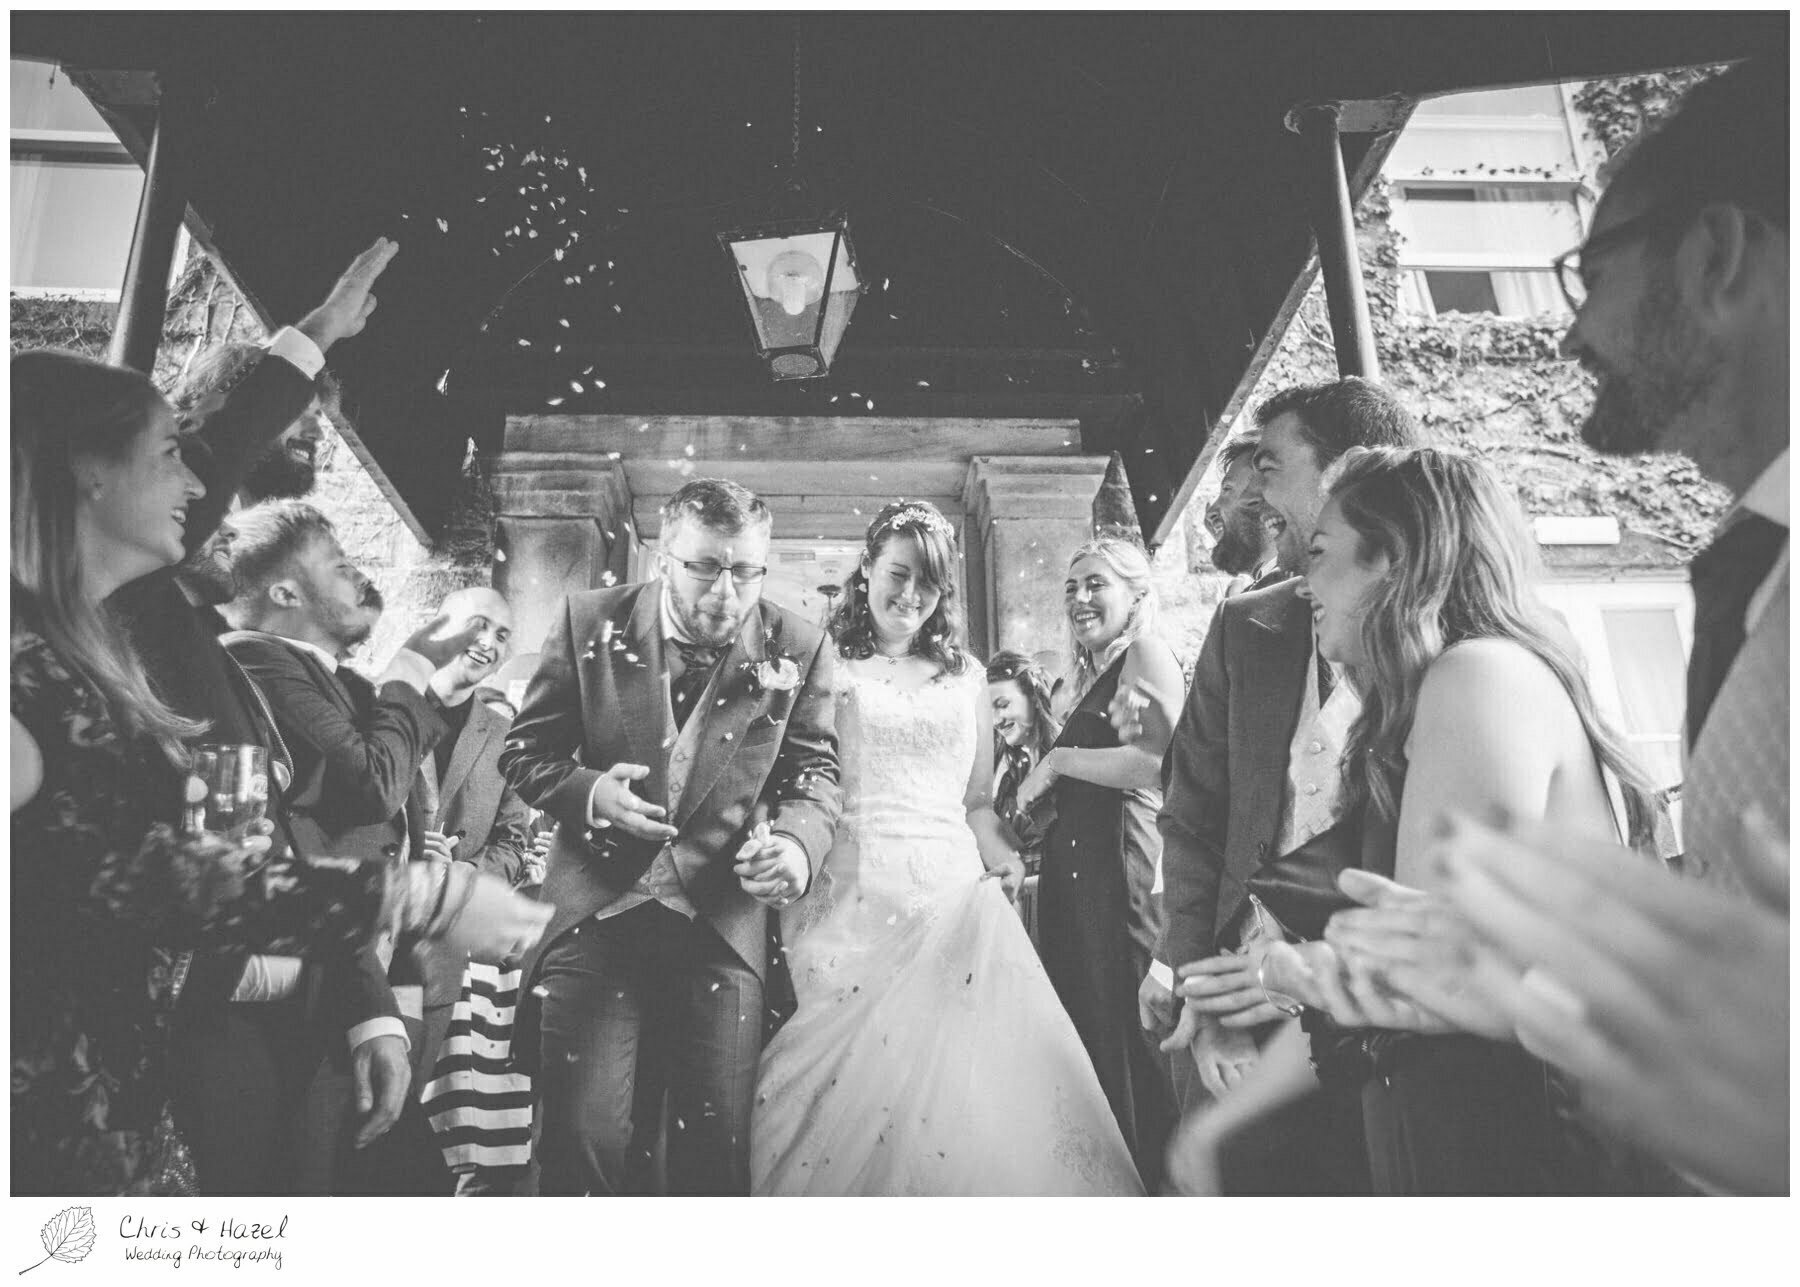 bride and groom confetti, documentary wedding photography, Ilkley wedding photographer, Ilkley wedding photography, The Craiglands hotel wedding photography, west Yorkshire wedding photography, chris and hazel wedding photography, emily nunwick, sam nicholson, emily nicholson,